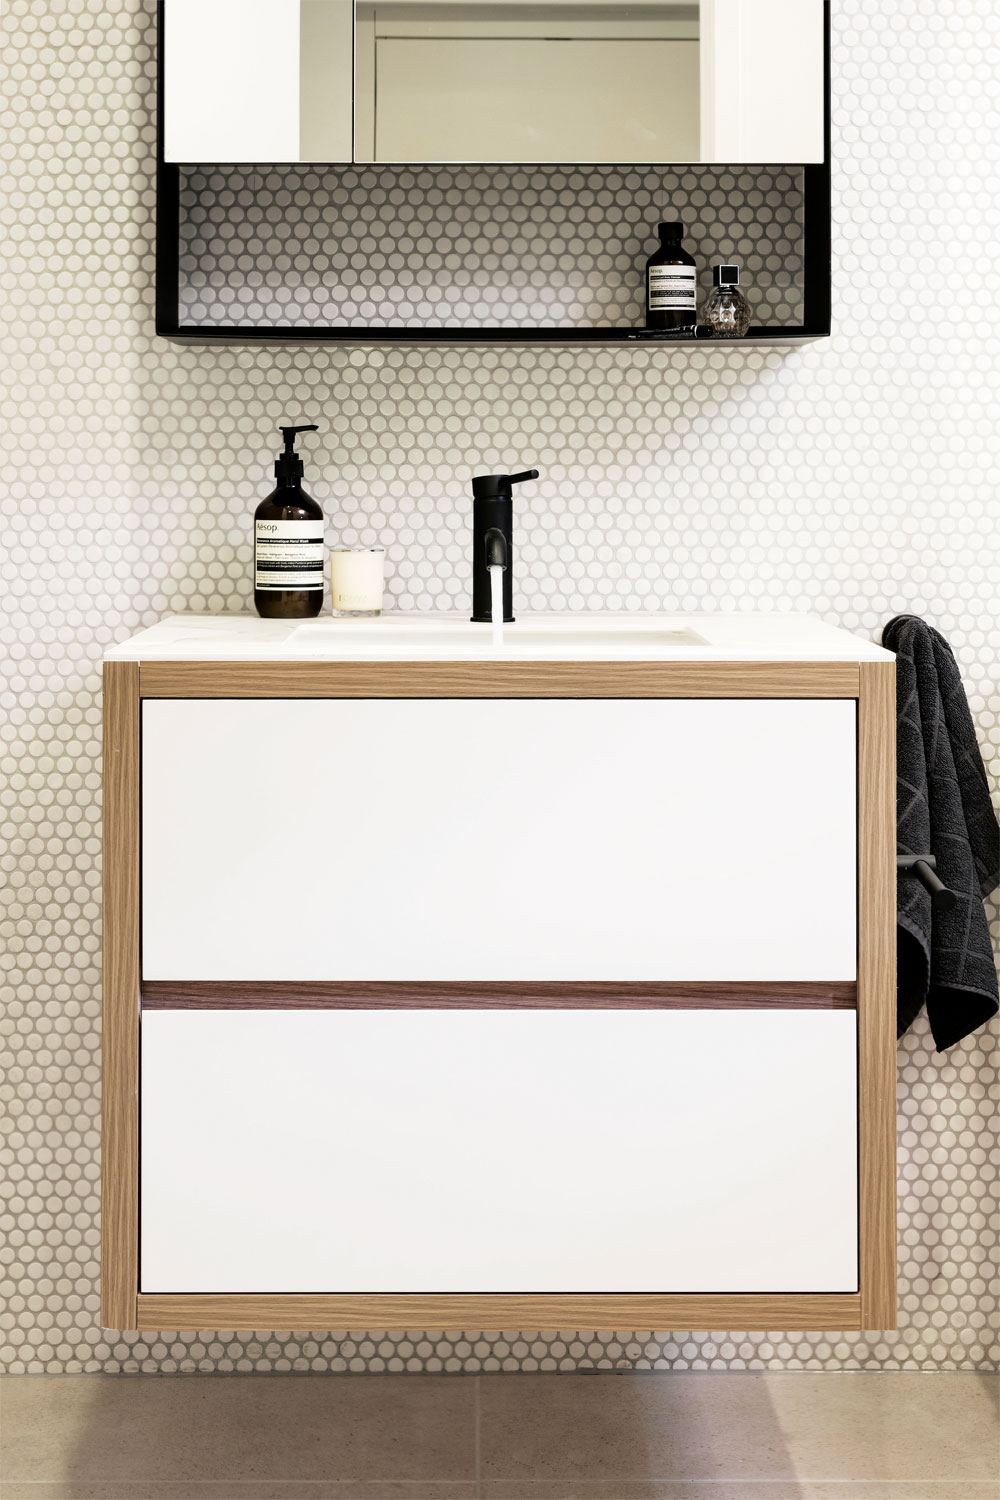 Sleek and trendy: an apartment bathroom project